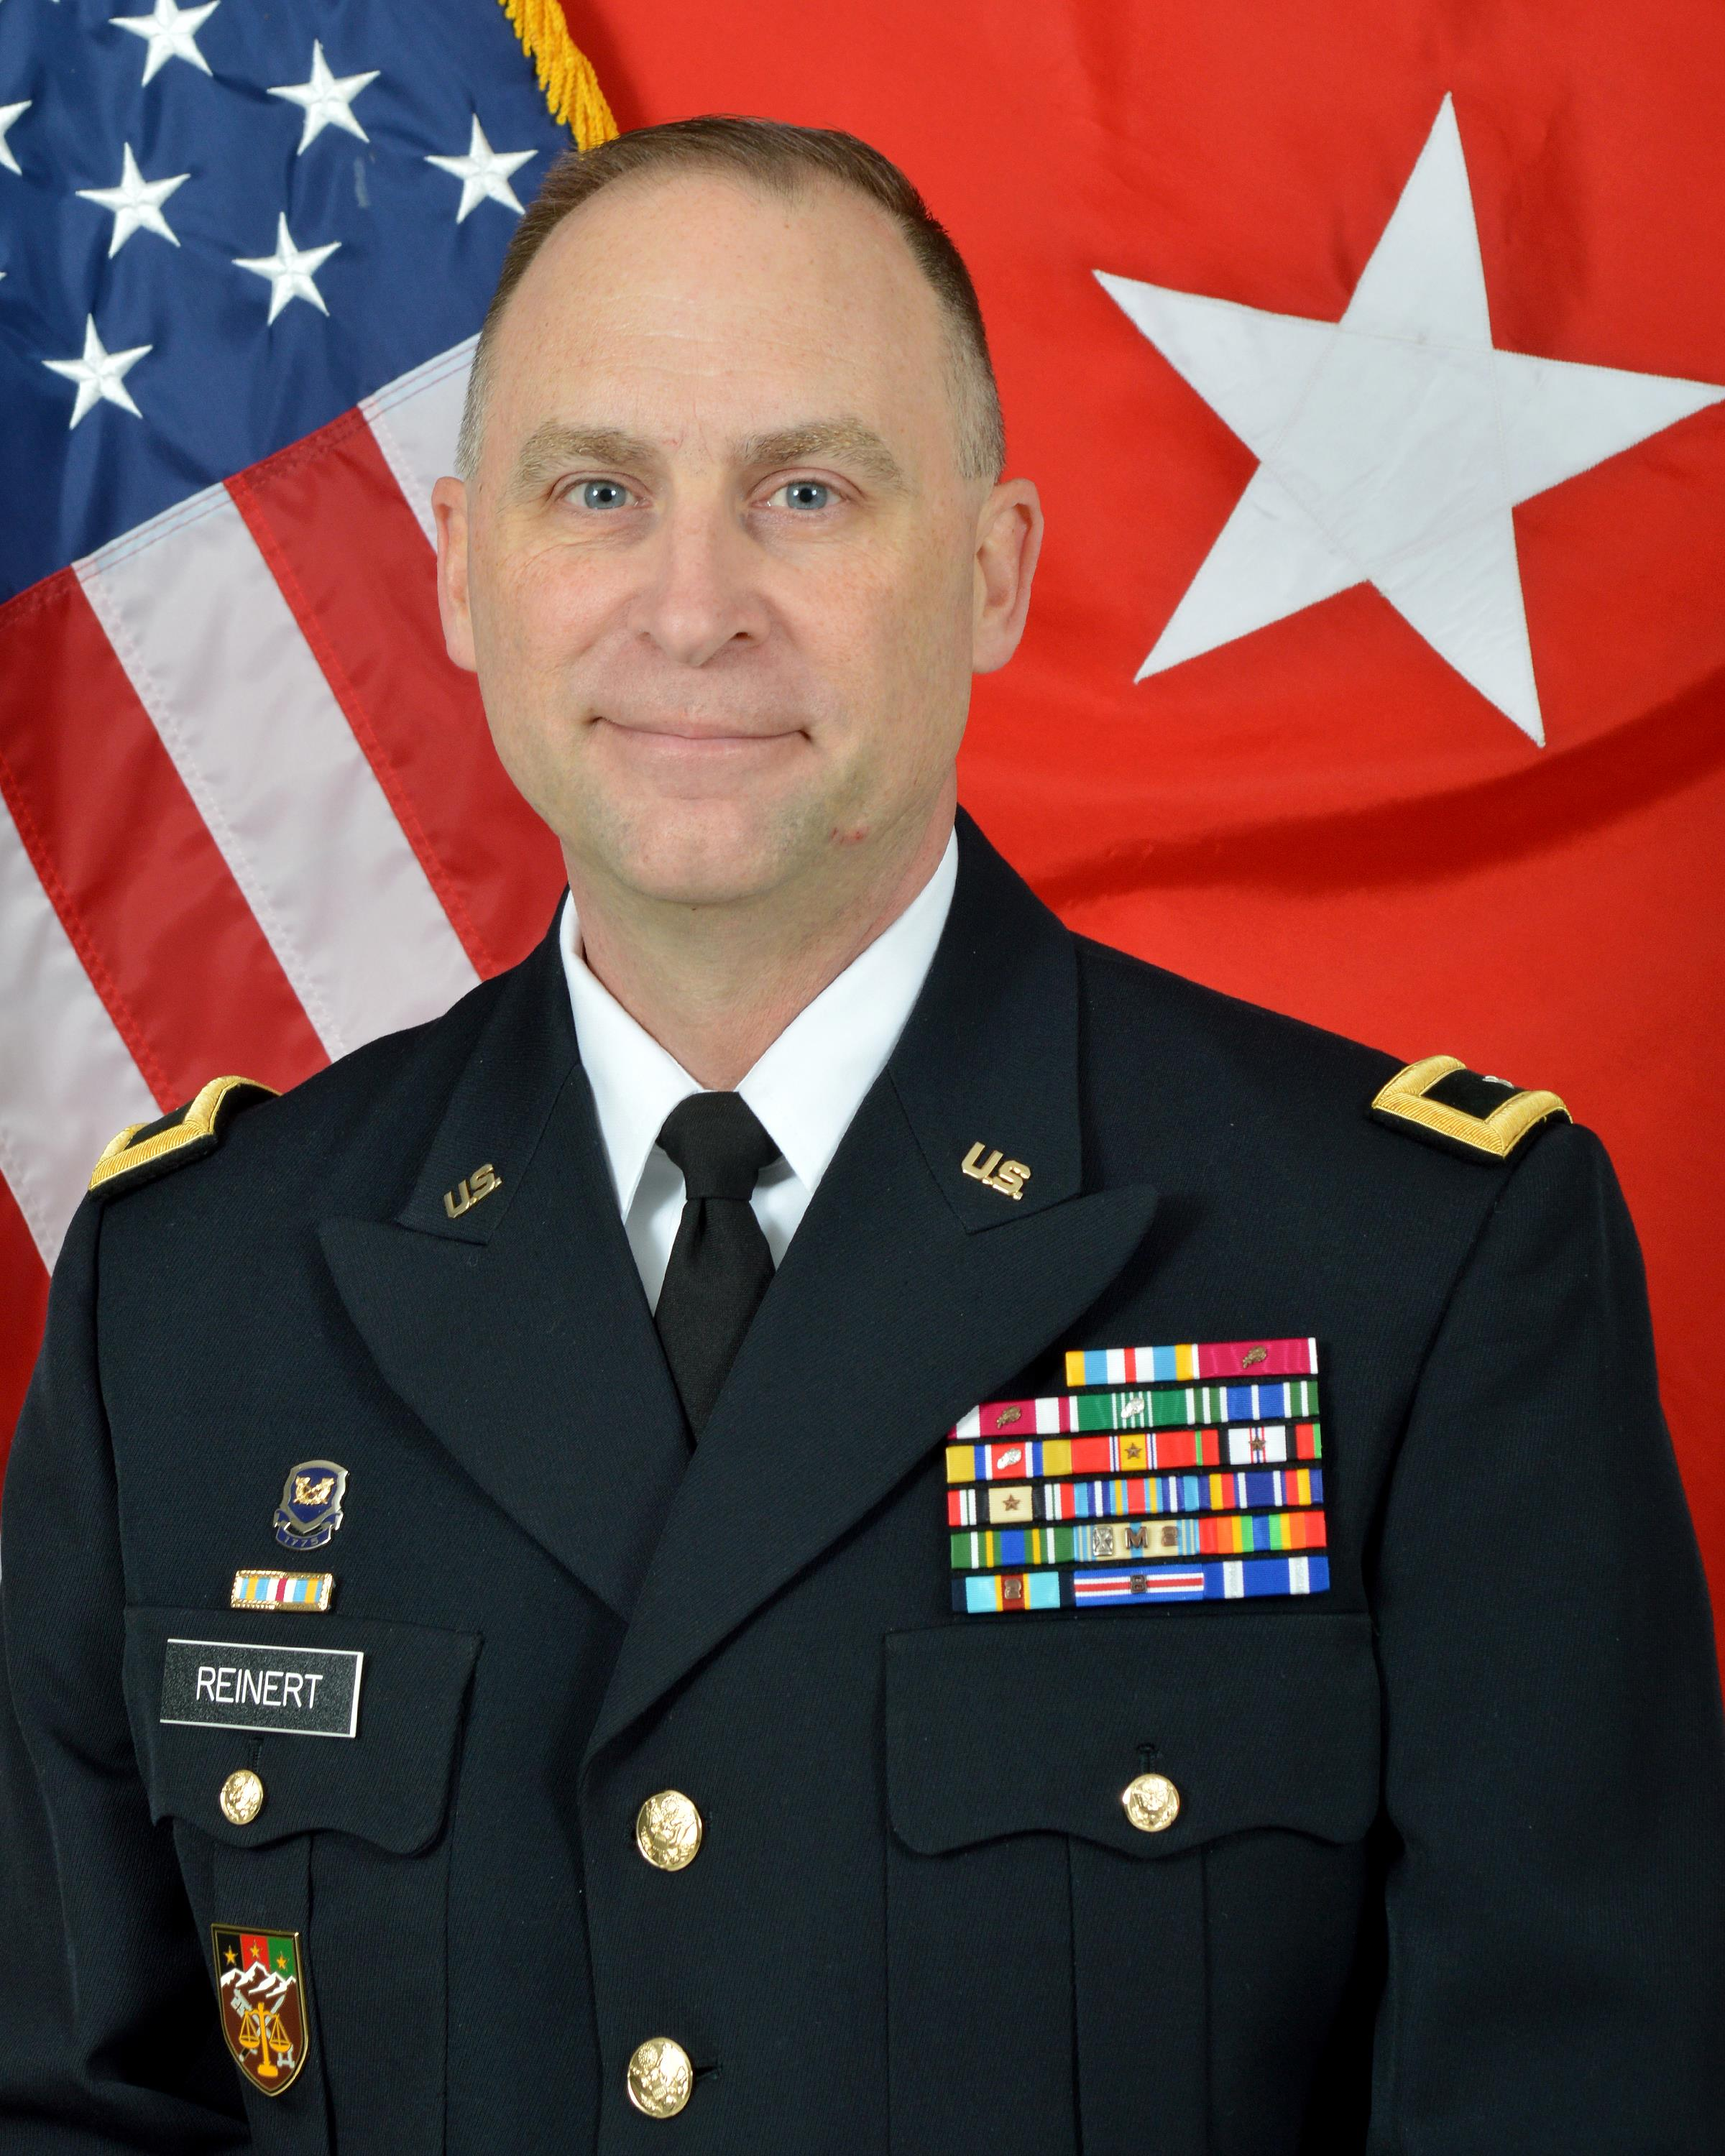 Major General Patrick J Reinert & Gt Us Army Reserve